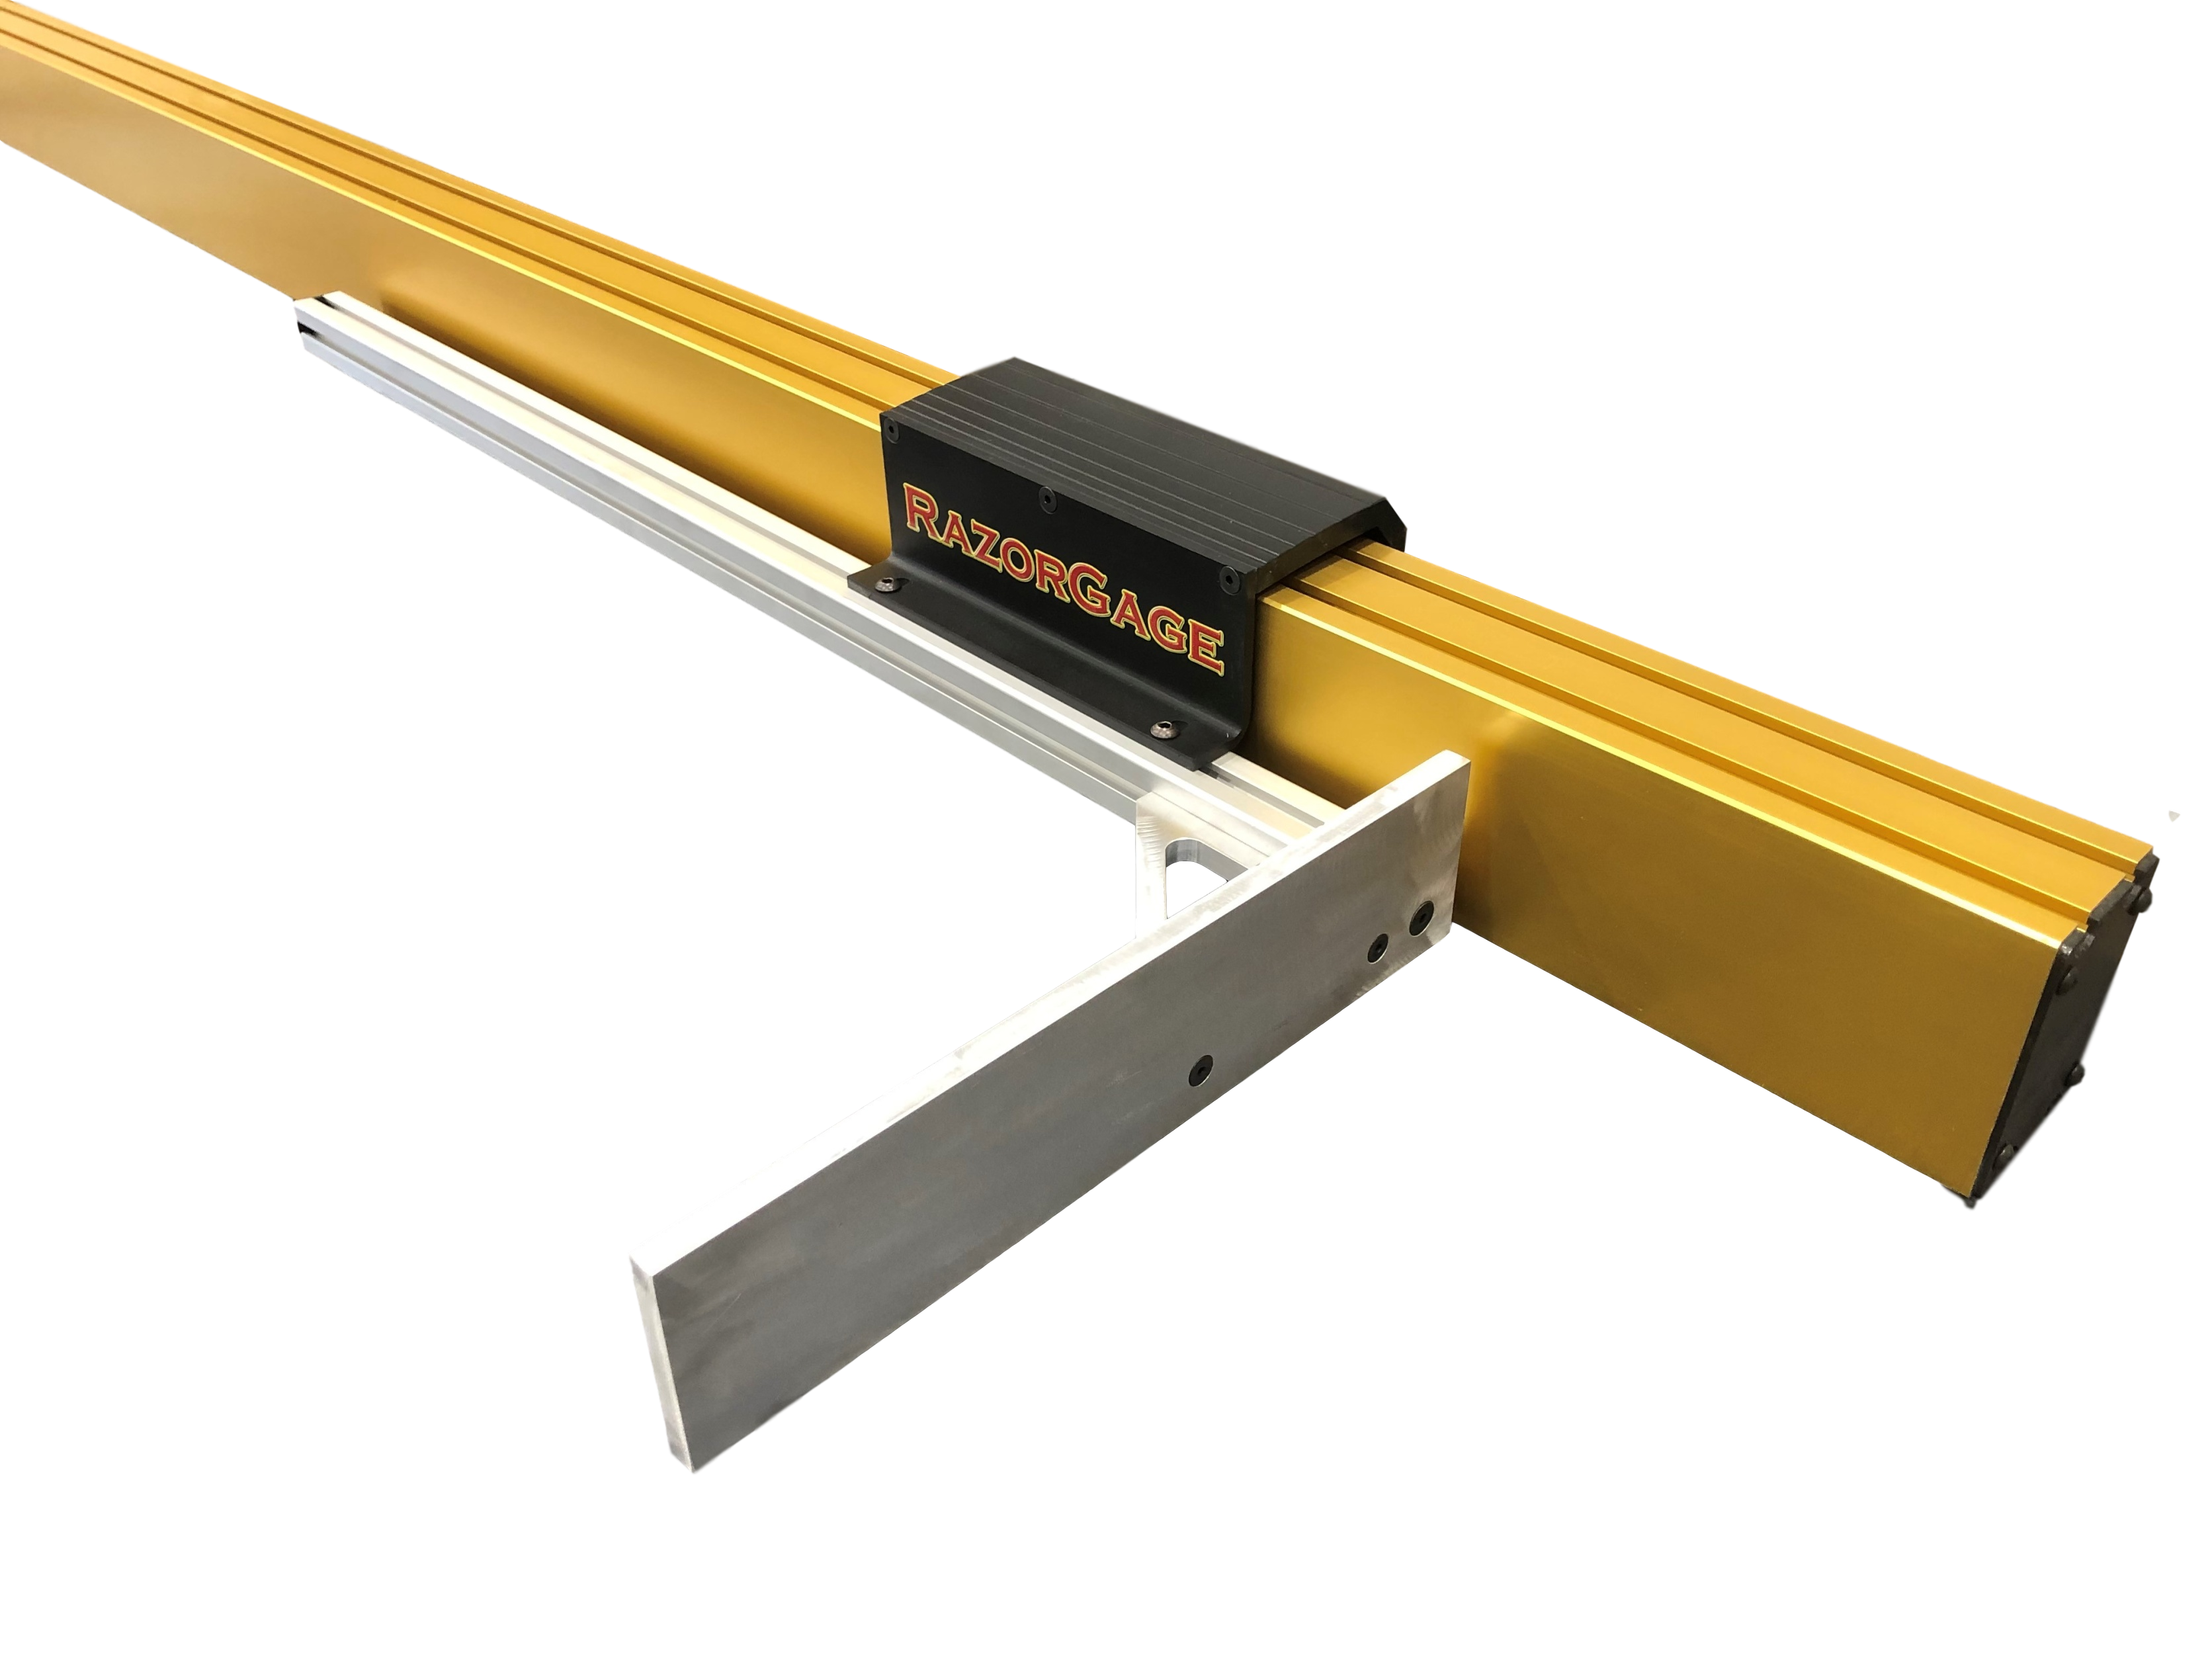 GangStop Carriage Extension for use when you are stacking boards and placing them side by side.